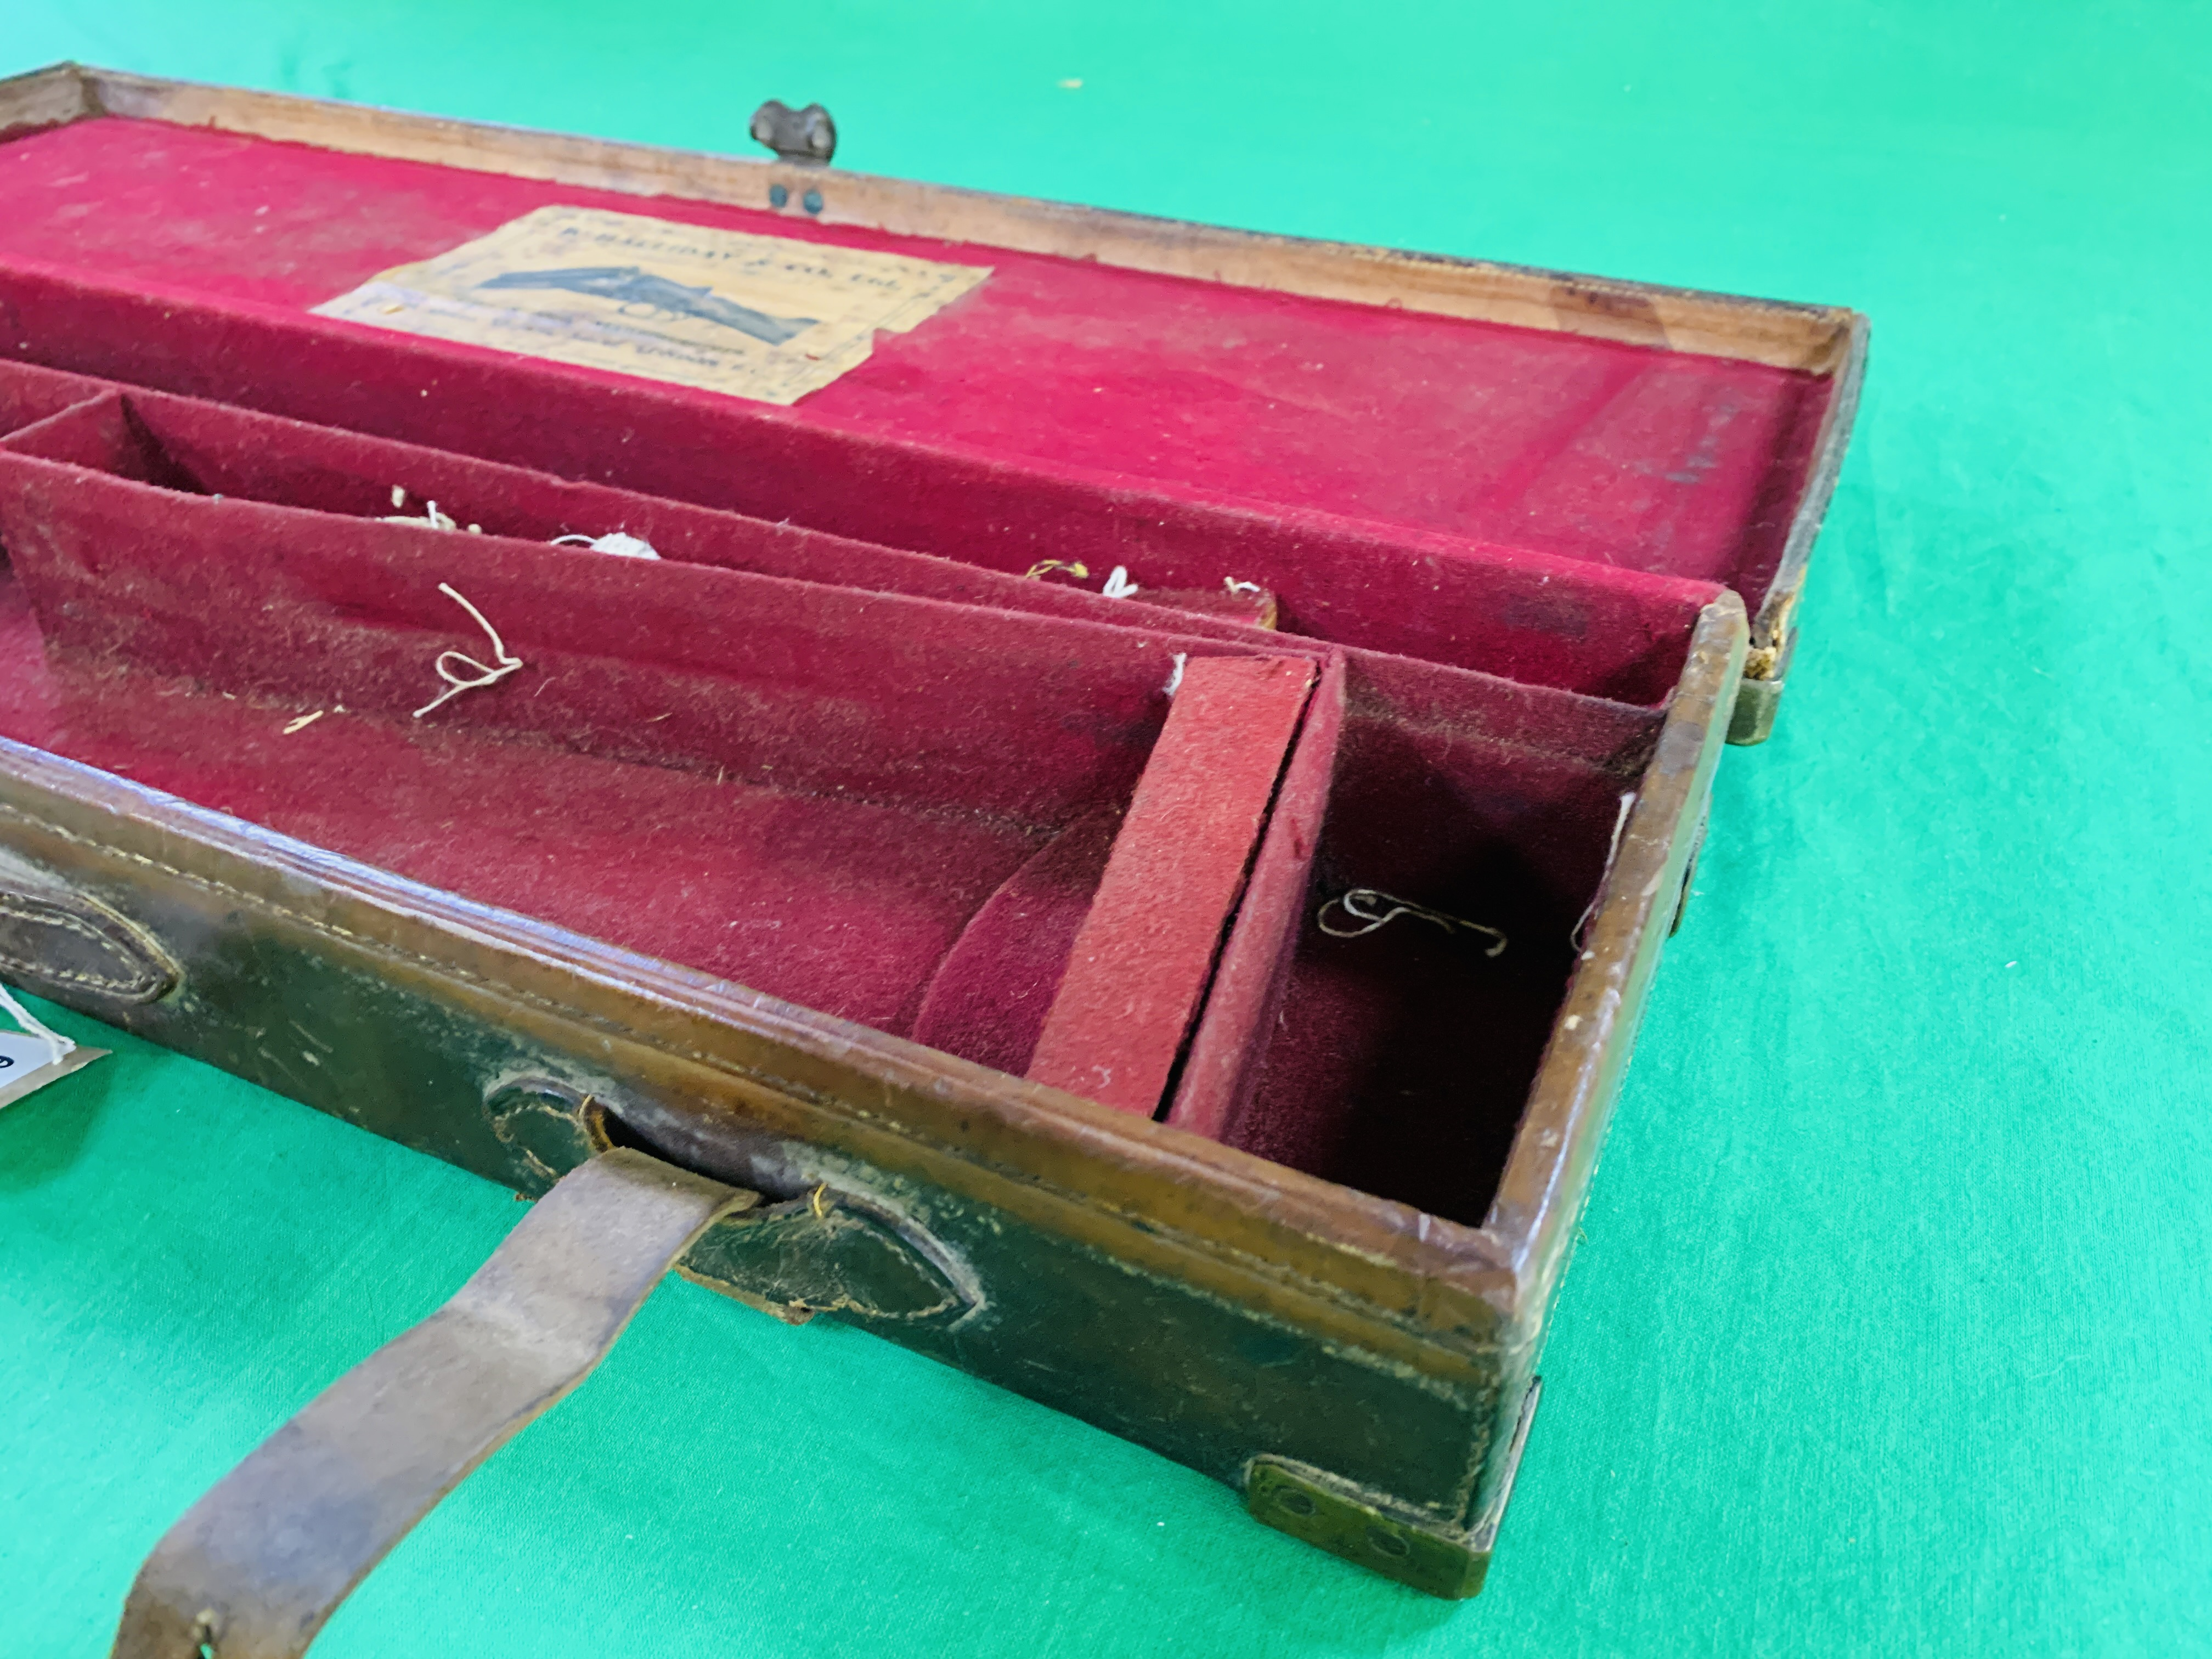 """OAK AND LEATHER 28 / 30"""" SIDE BY SIDE GUN CASE WITH B. HALLIDAY AND CO. LTD OF LONDON CASE LABEL. - Image 5 of 10"""